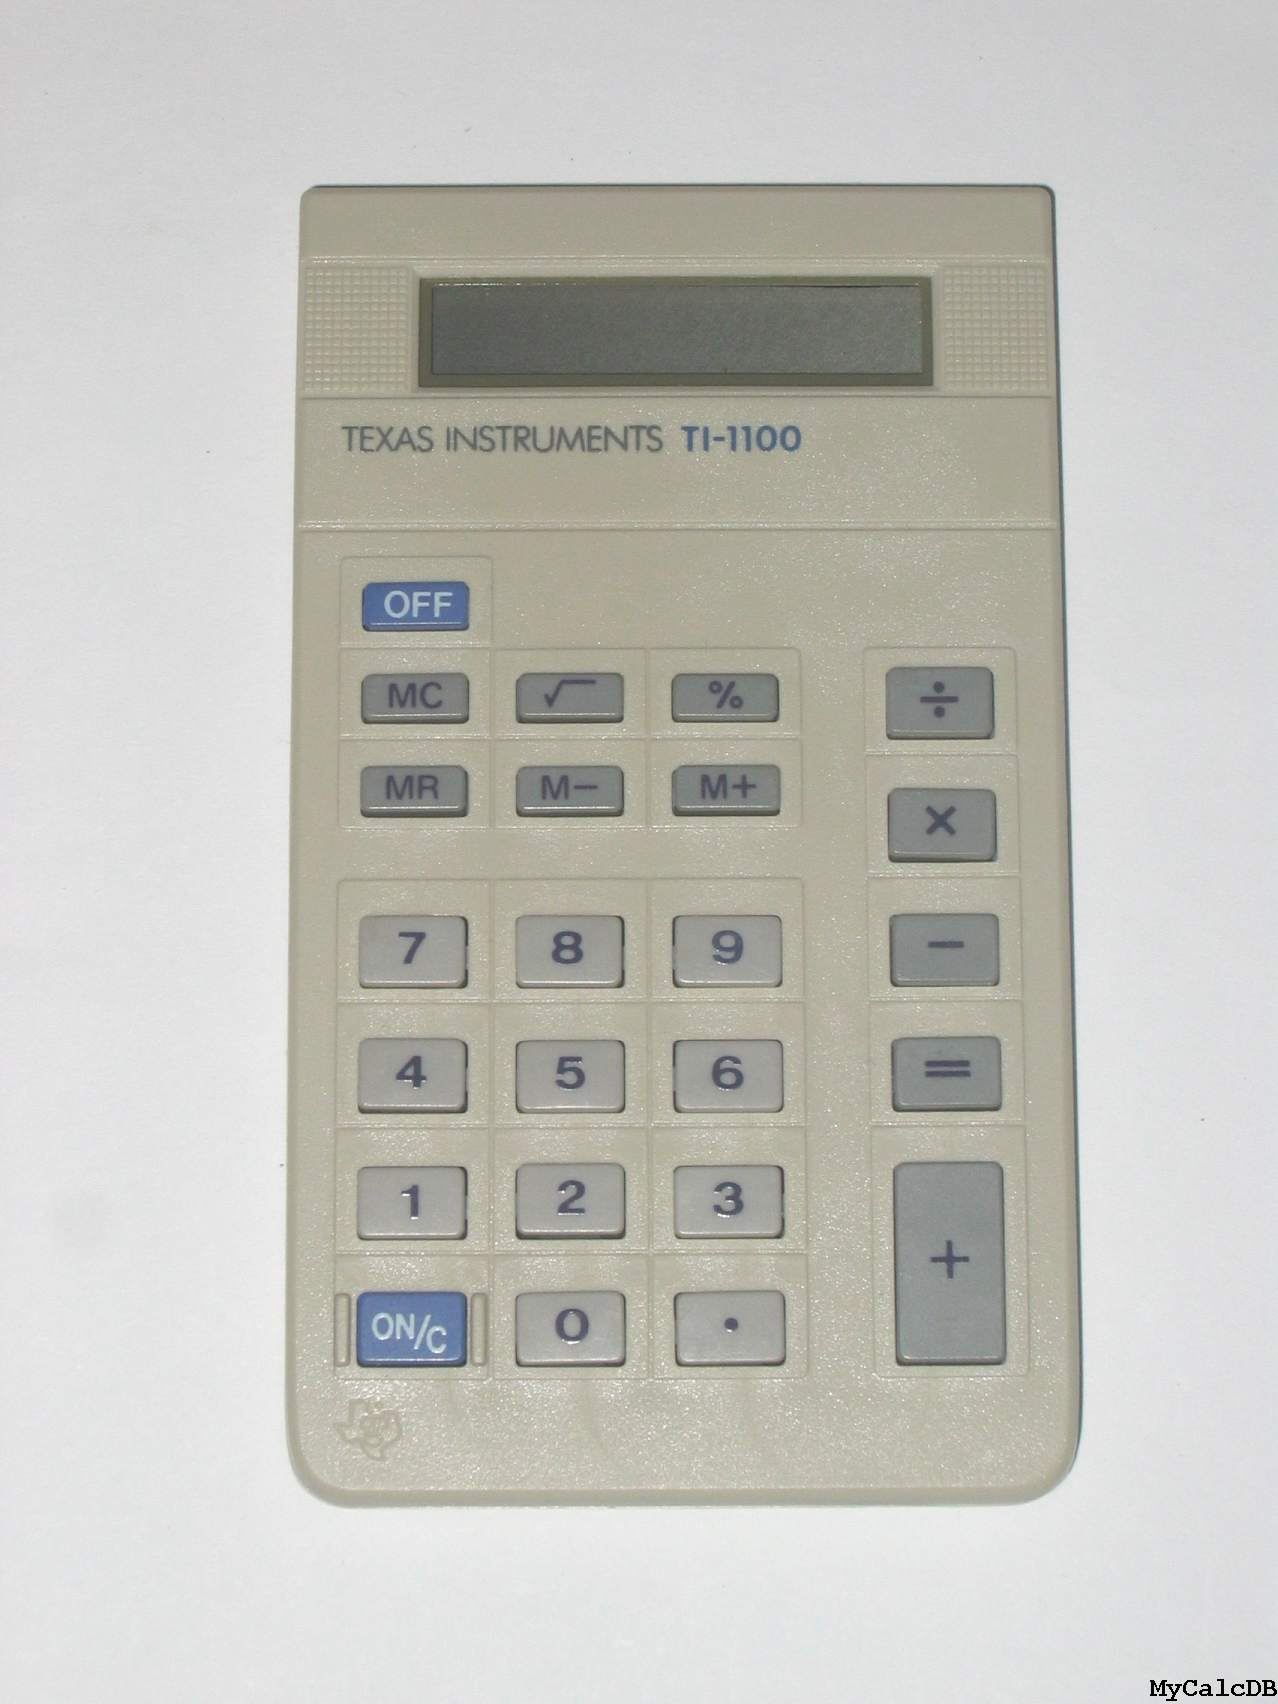 Texas Instruments TI-1100